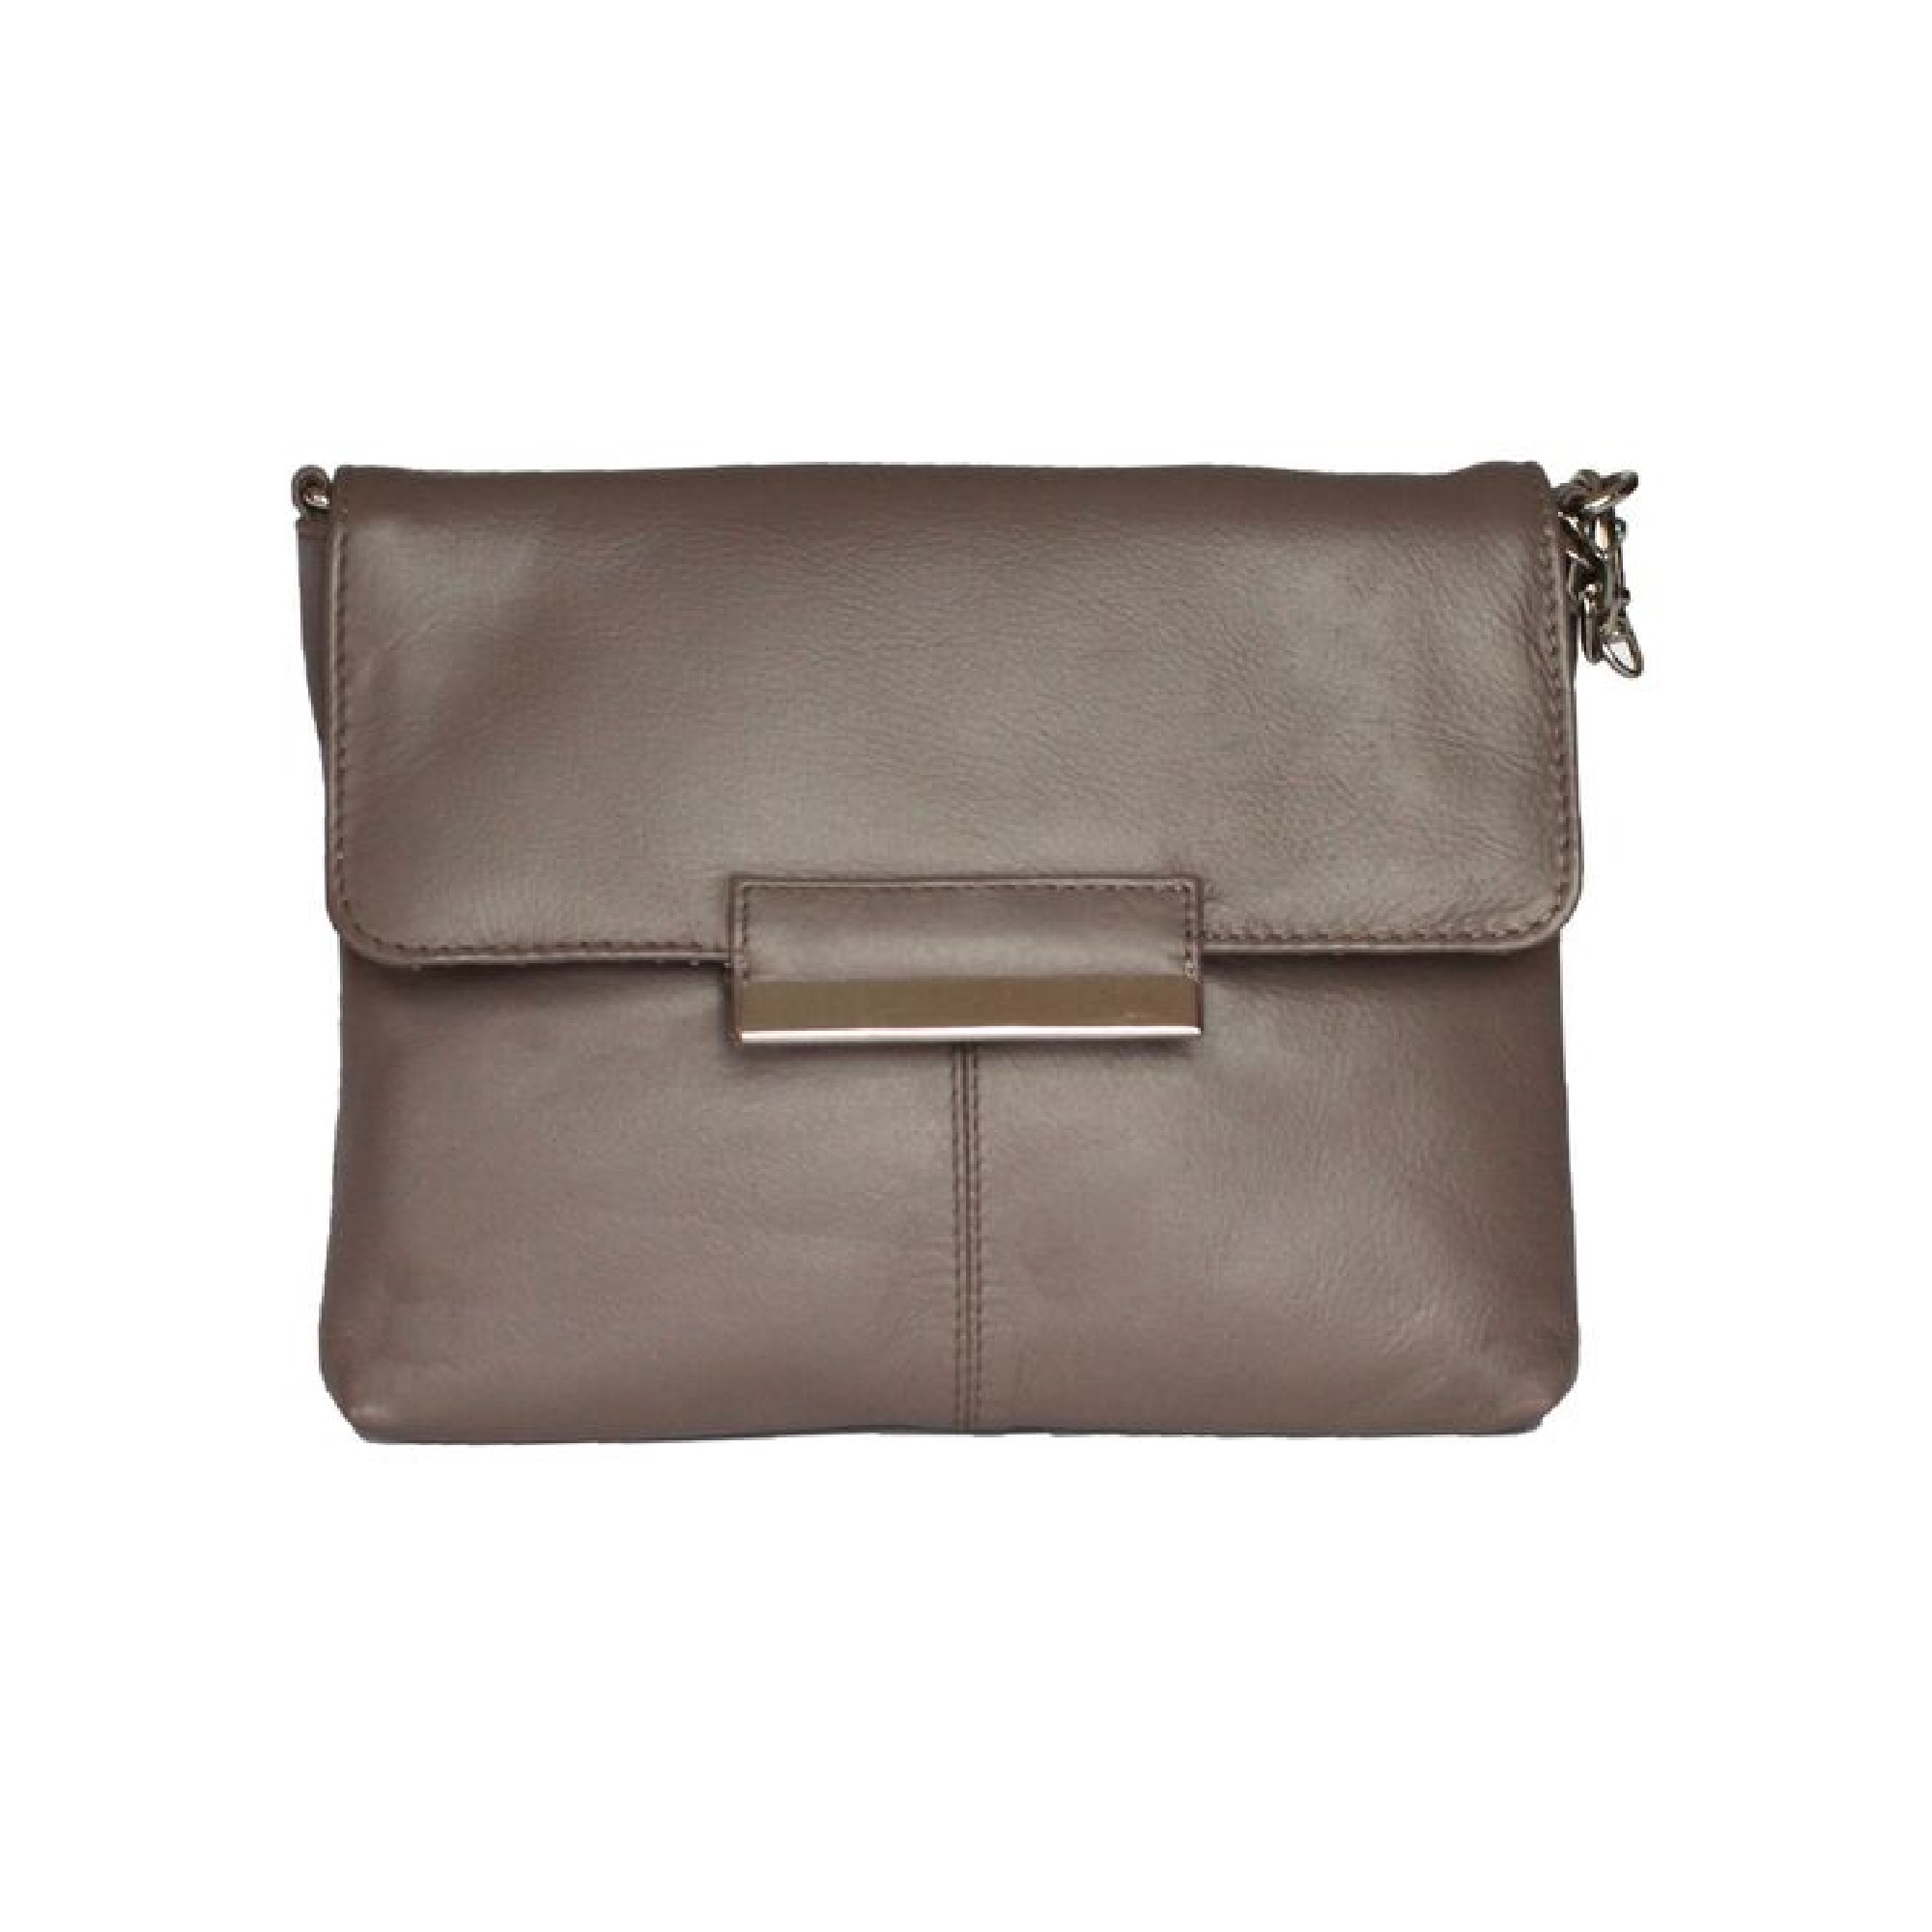 Eastern Counties Leather Womens/Ladies Carys Chain Strap Handbag (One size) (Taupe)